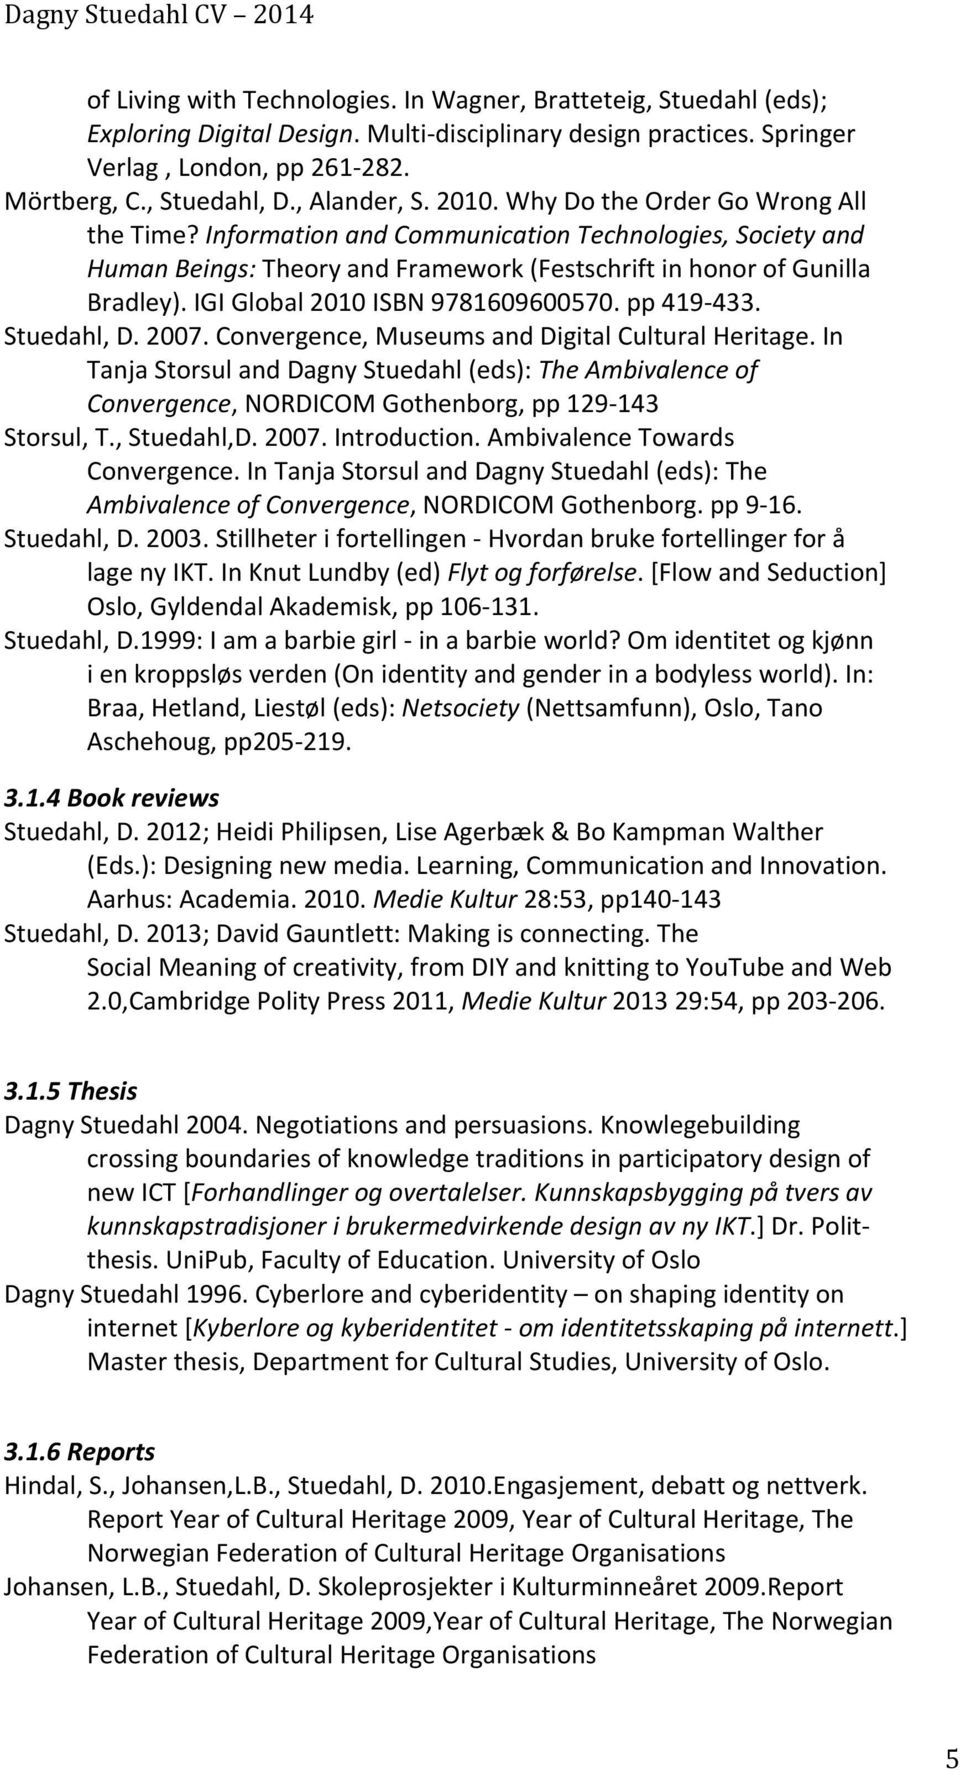 IGI Global 2010 ISBN 9781609600570. pp 419-433. Stuedahl, D. 2007. Convergence, Museums and Digital Cultural Heritage.